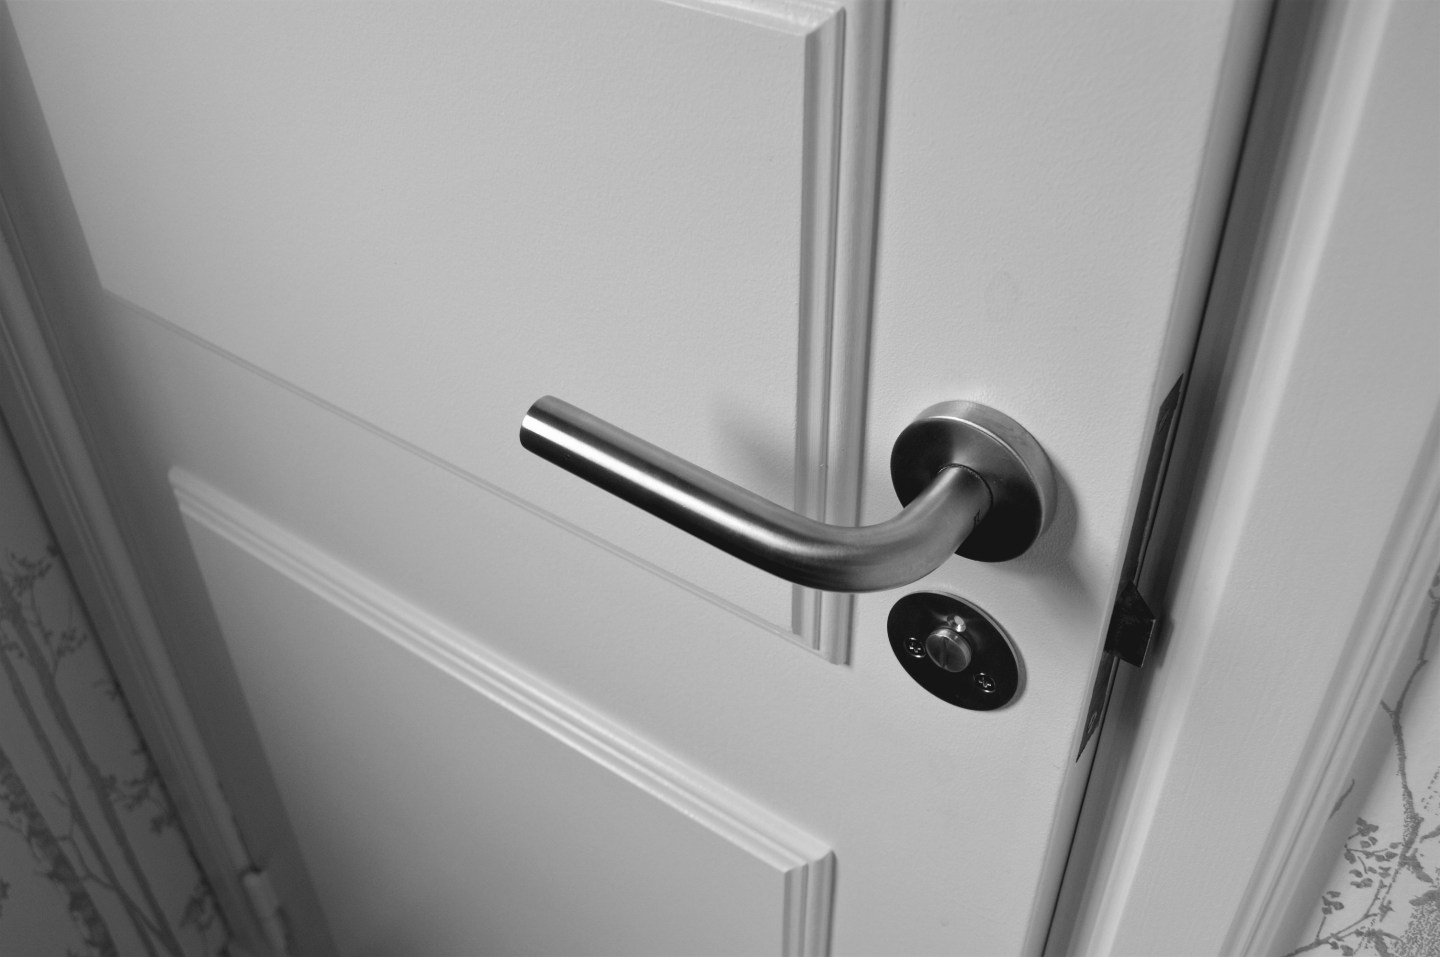 photograph of a door handle on a white door